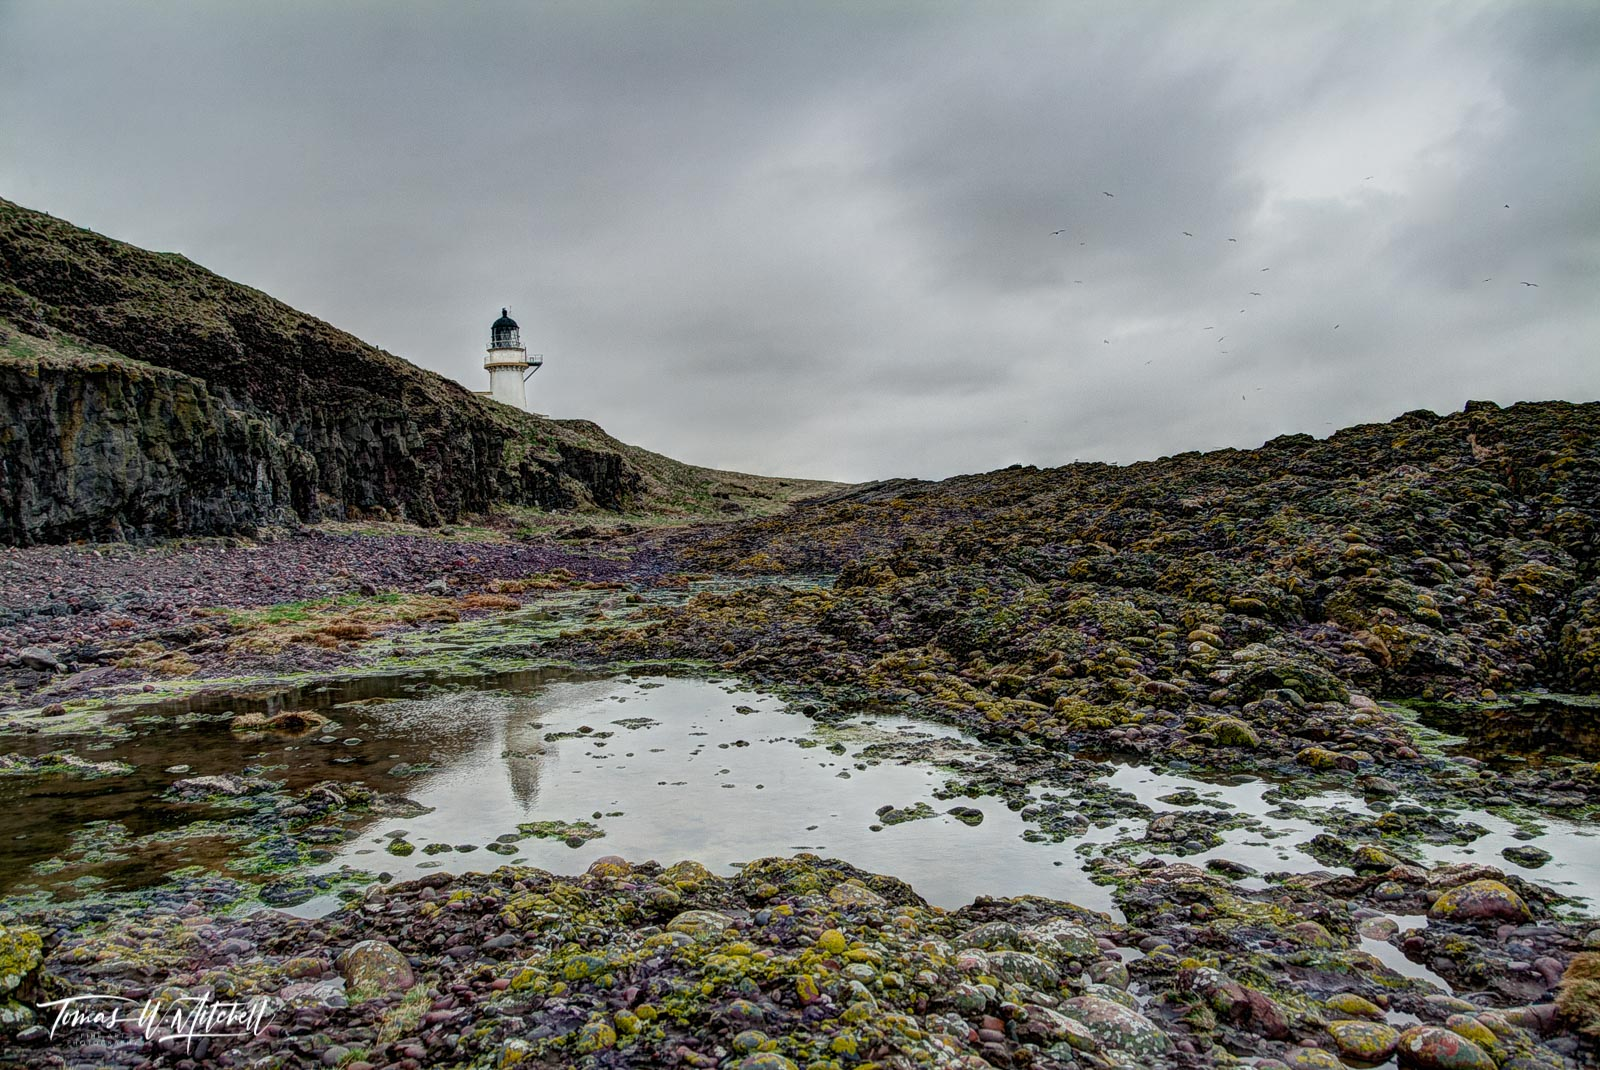 limited edition, museum grade, fine art, prints, todhead lighthouse, lighthouse, marykirk, scotland, a92, stormy, coastline, moss, rocks, yellows, greens, reflection, water, gulls, mood, photo